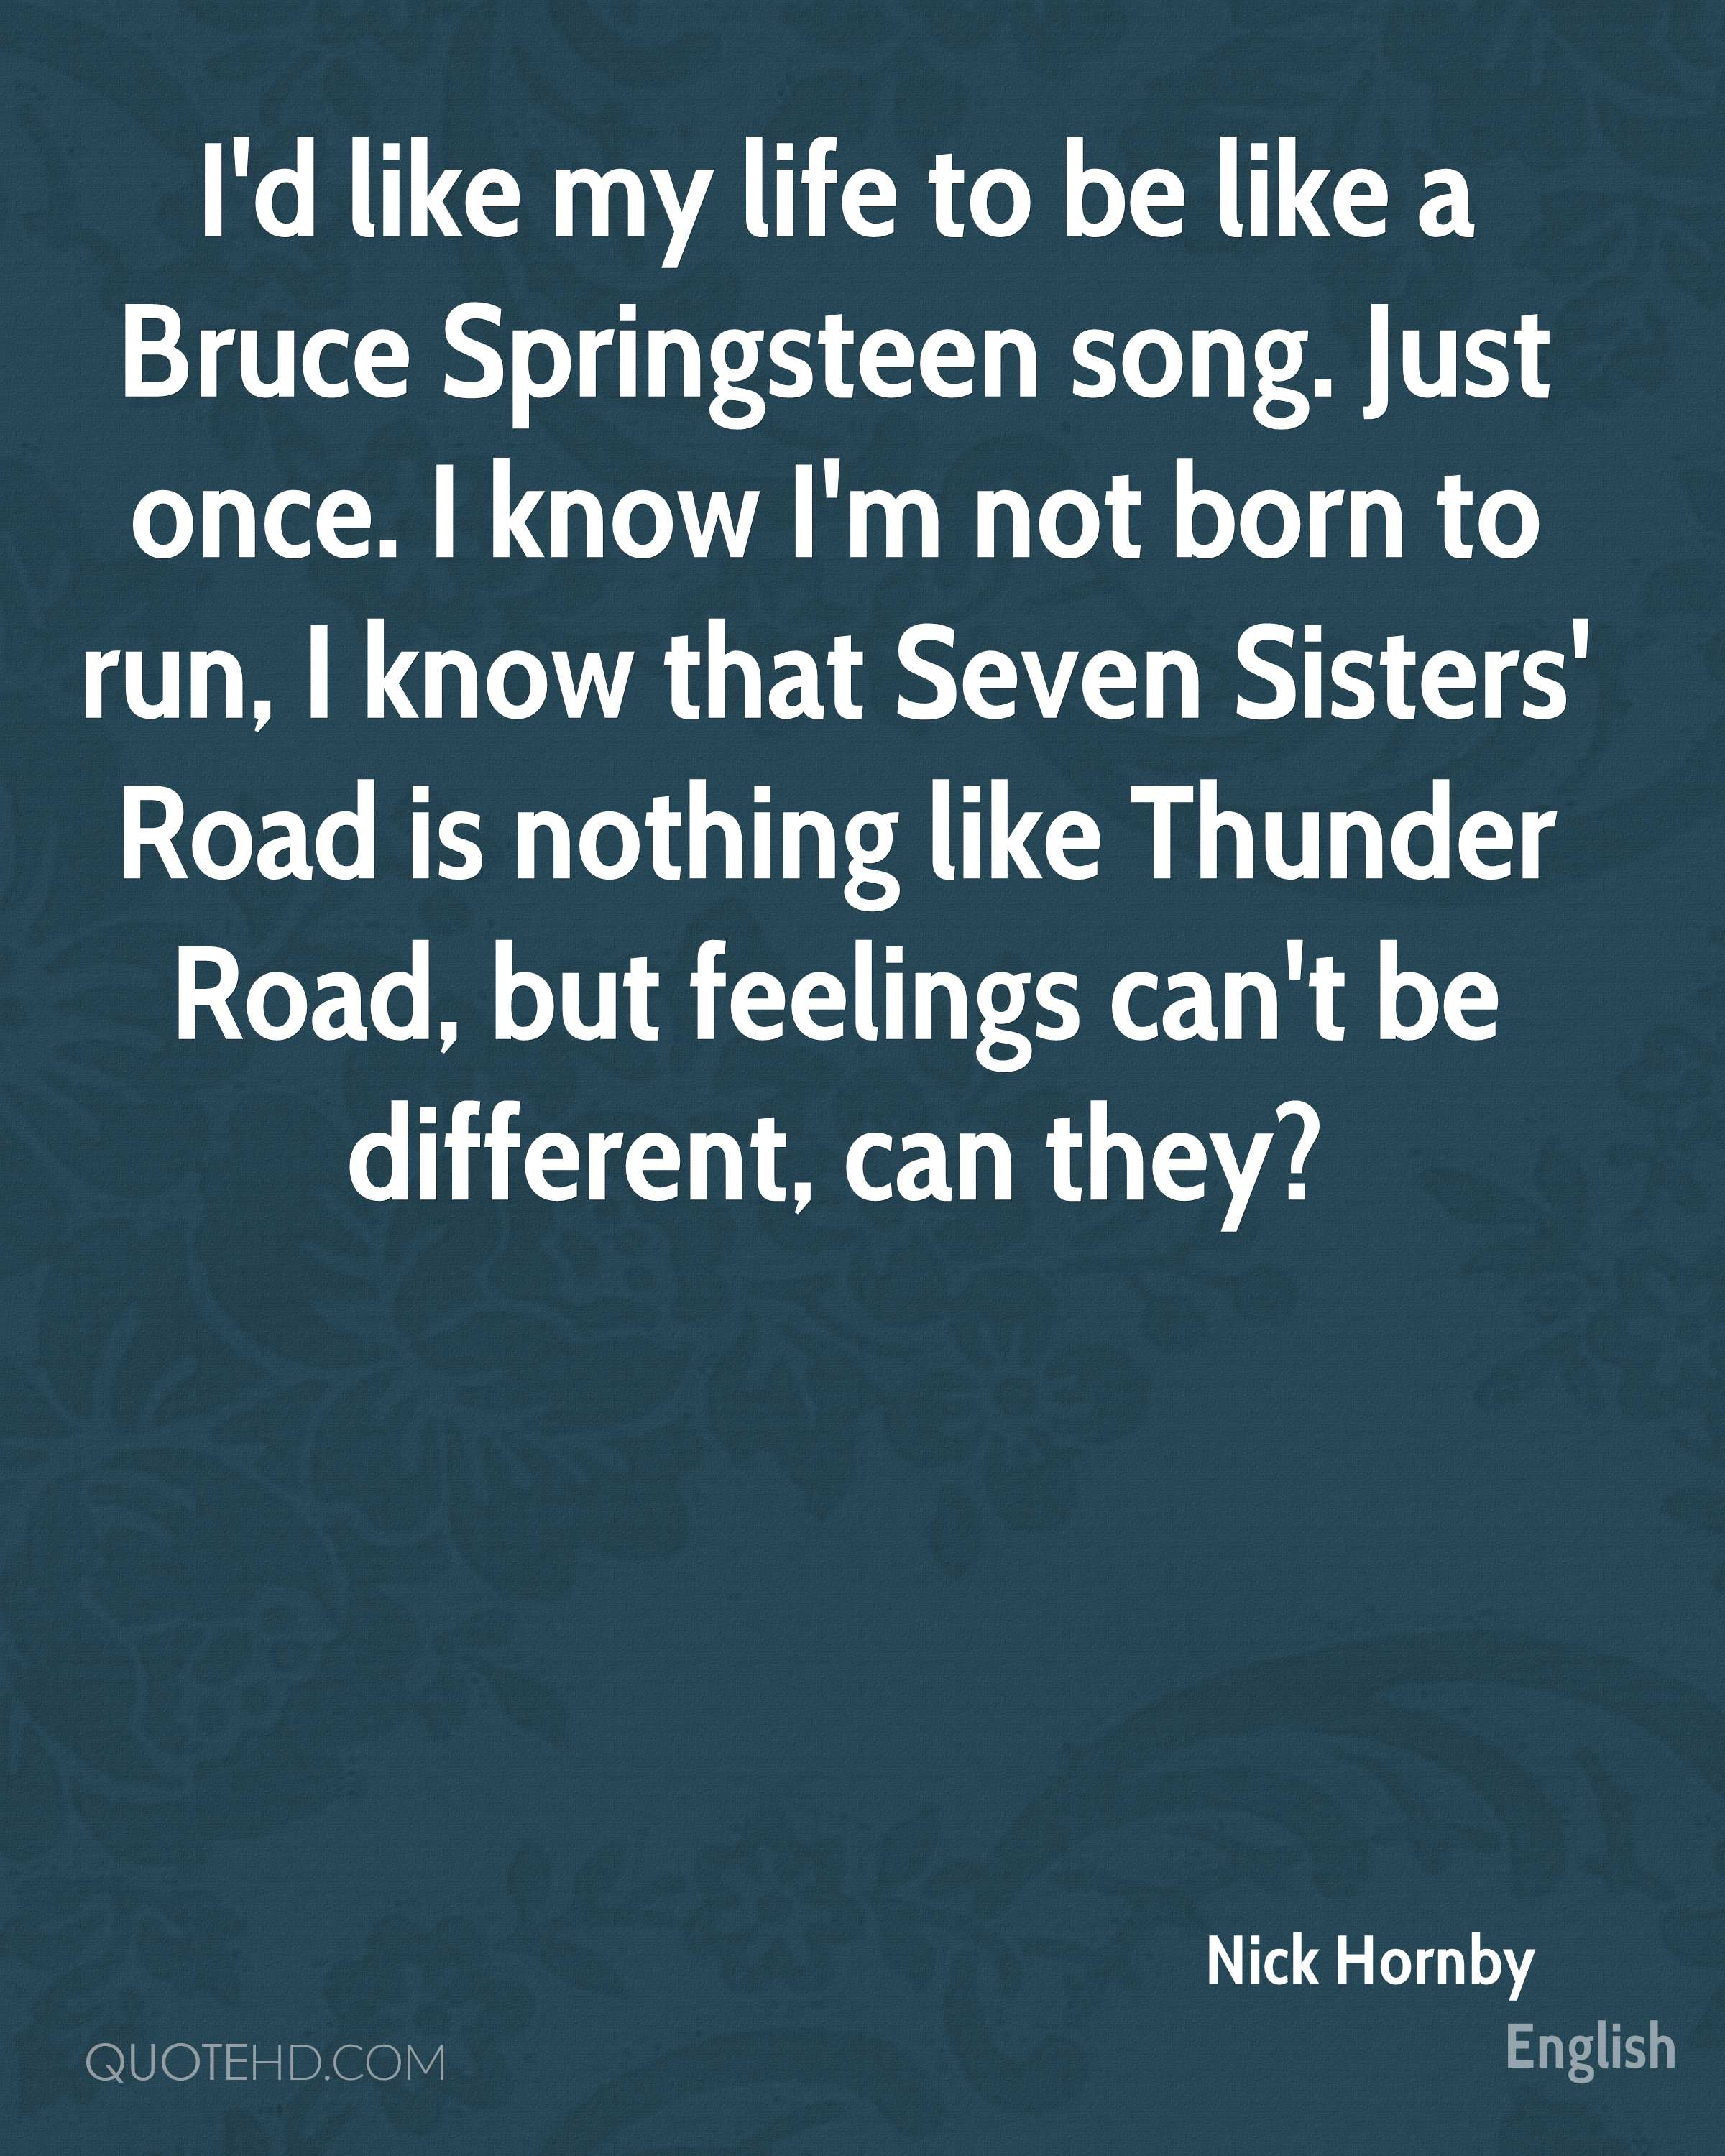 I'd like my life to be like a Bruce Springsteen song. Just once. I know I'm not born to run, I know that Seven Sisters' Road is nothing like Thunder Road, but feelings can't be different, can they?